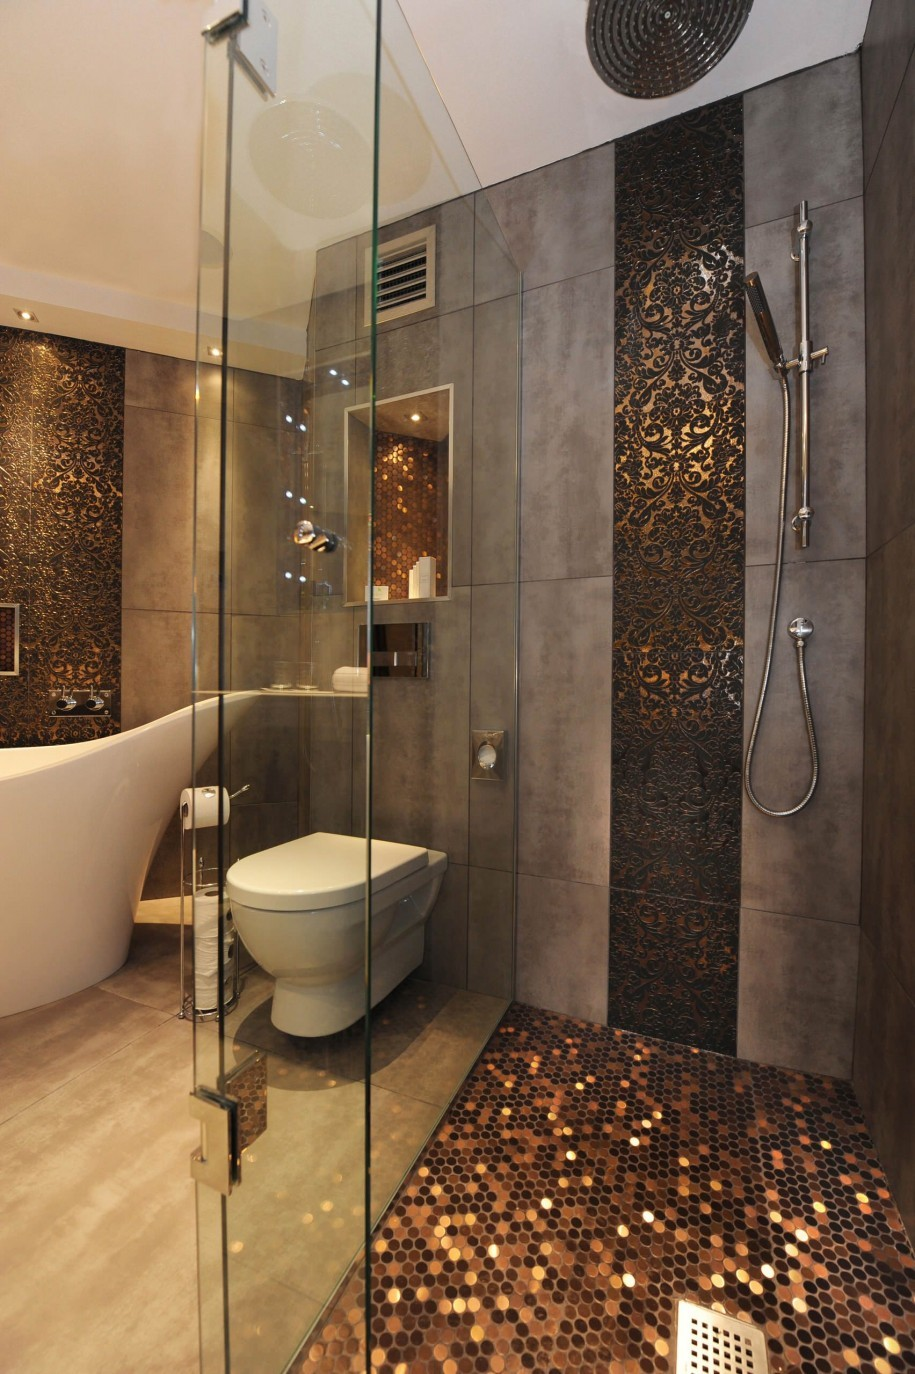 Luxury bathroom designs 2016 - Luxury In A Limited Space